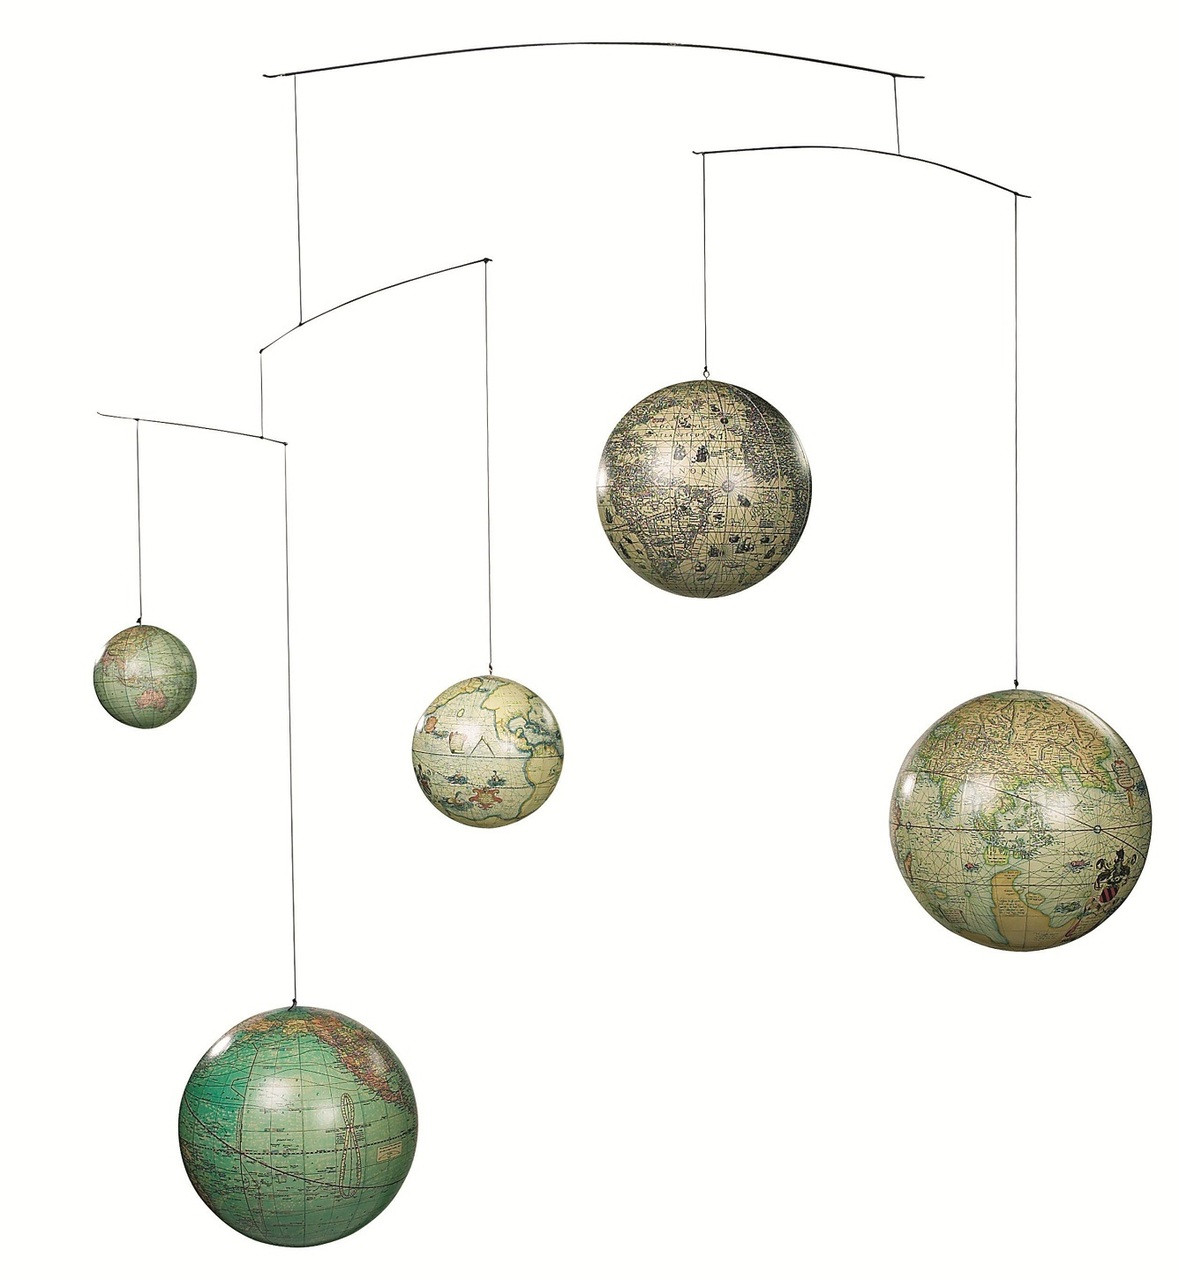 (GL060) 5 Globe Mobile - Features 5 Different Globes of Different Sizes from 5 Different Periods of Time